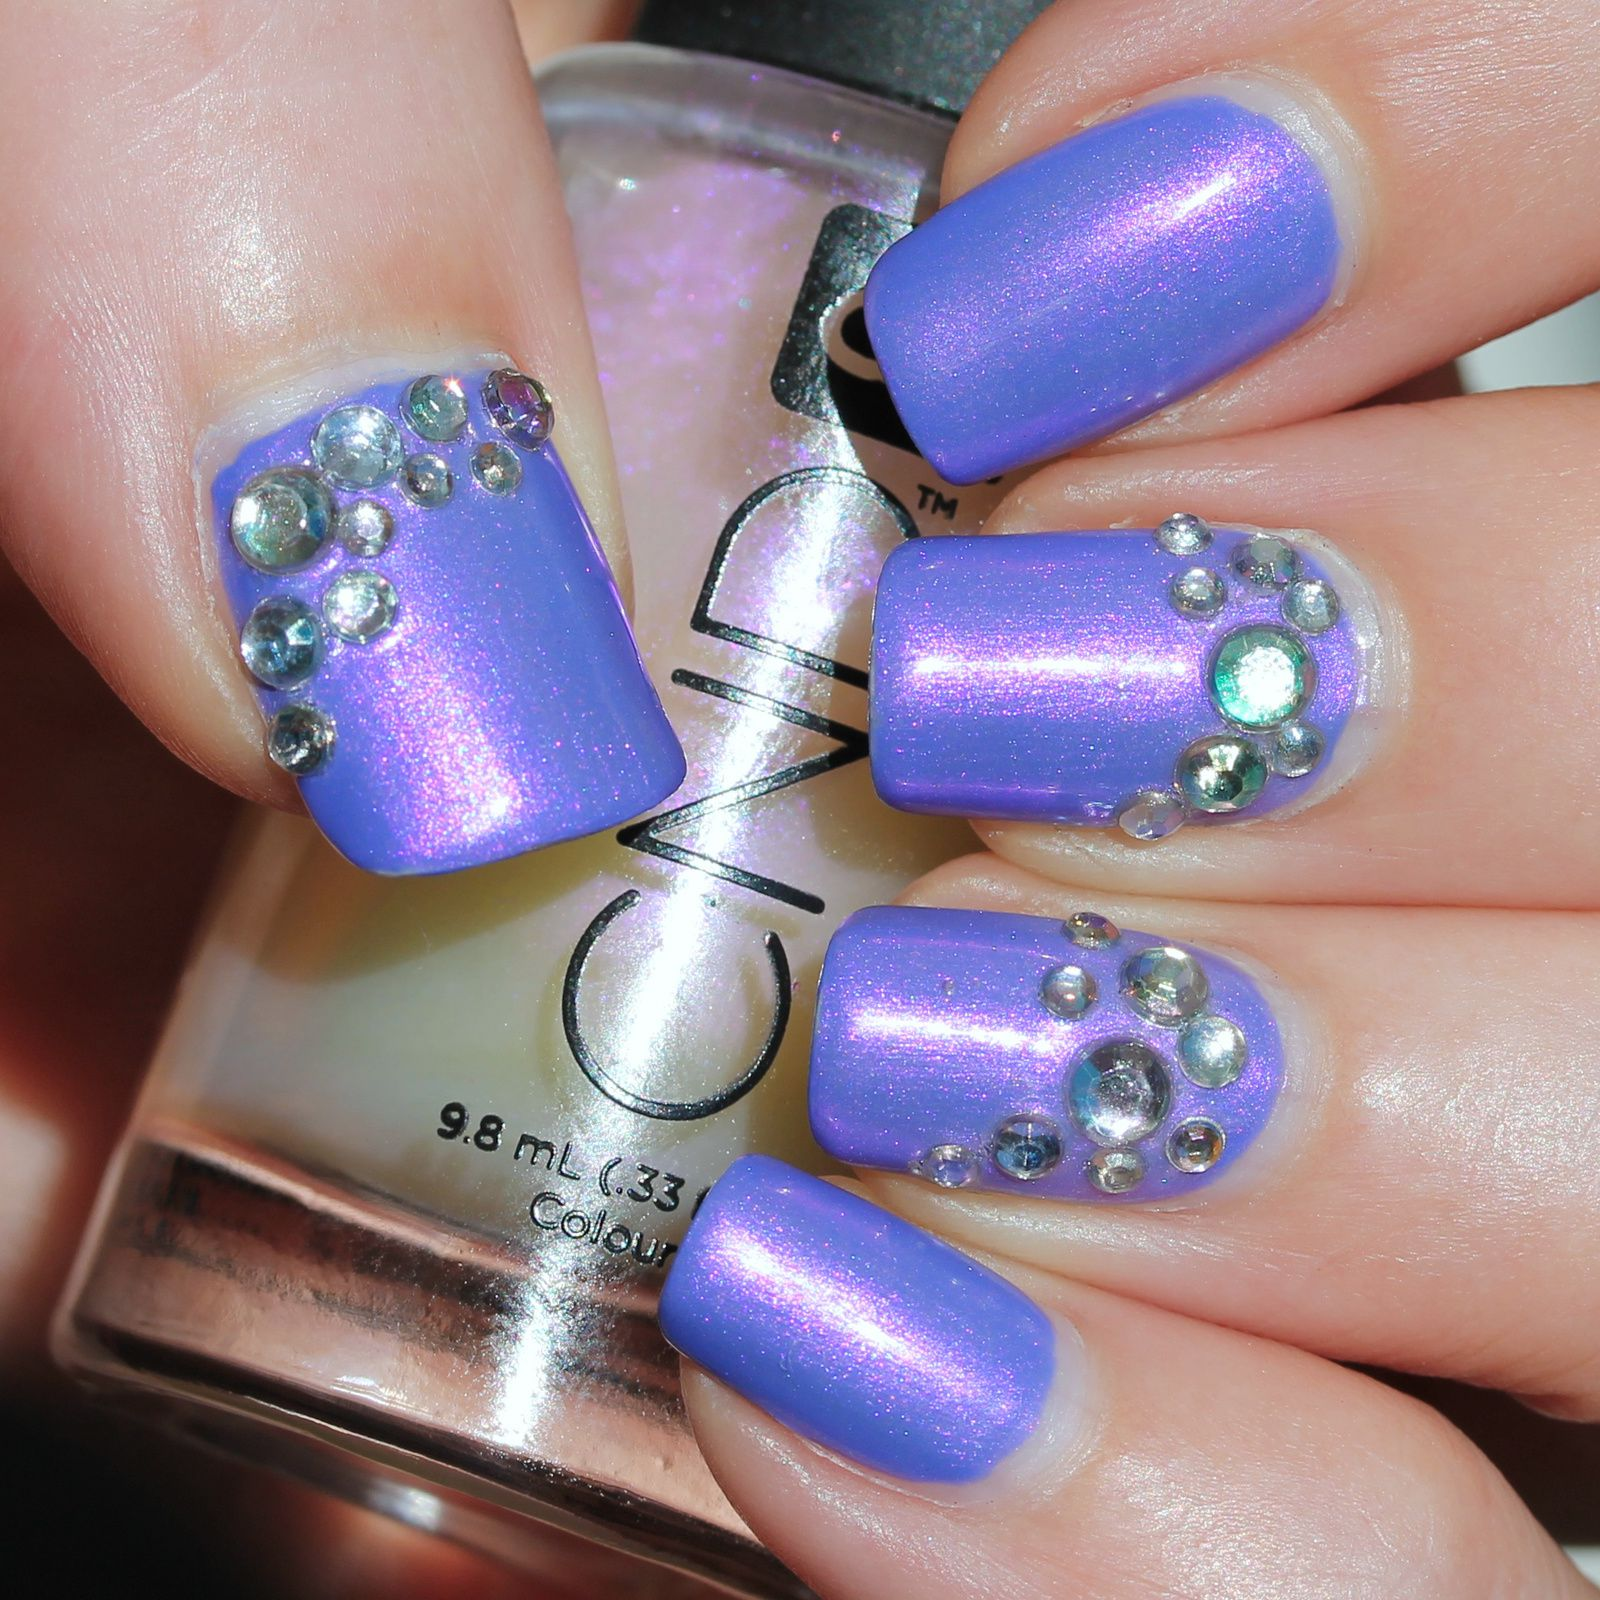 Essie Protein Base Coat / Sinful Colors Purple Kraze / CND Violet Shimmer / Born Pretty Store Strass / Sally Hansen Miracle Gel Top Coat